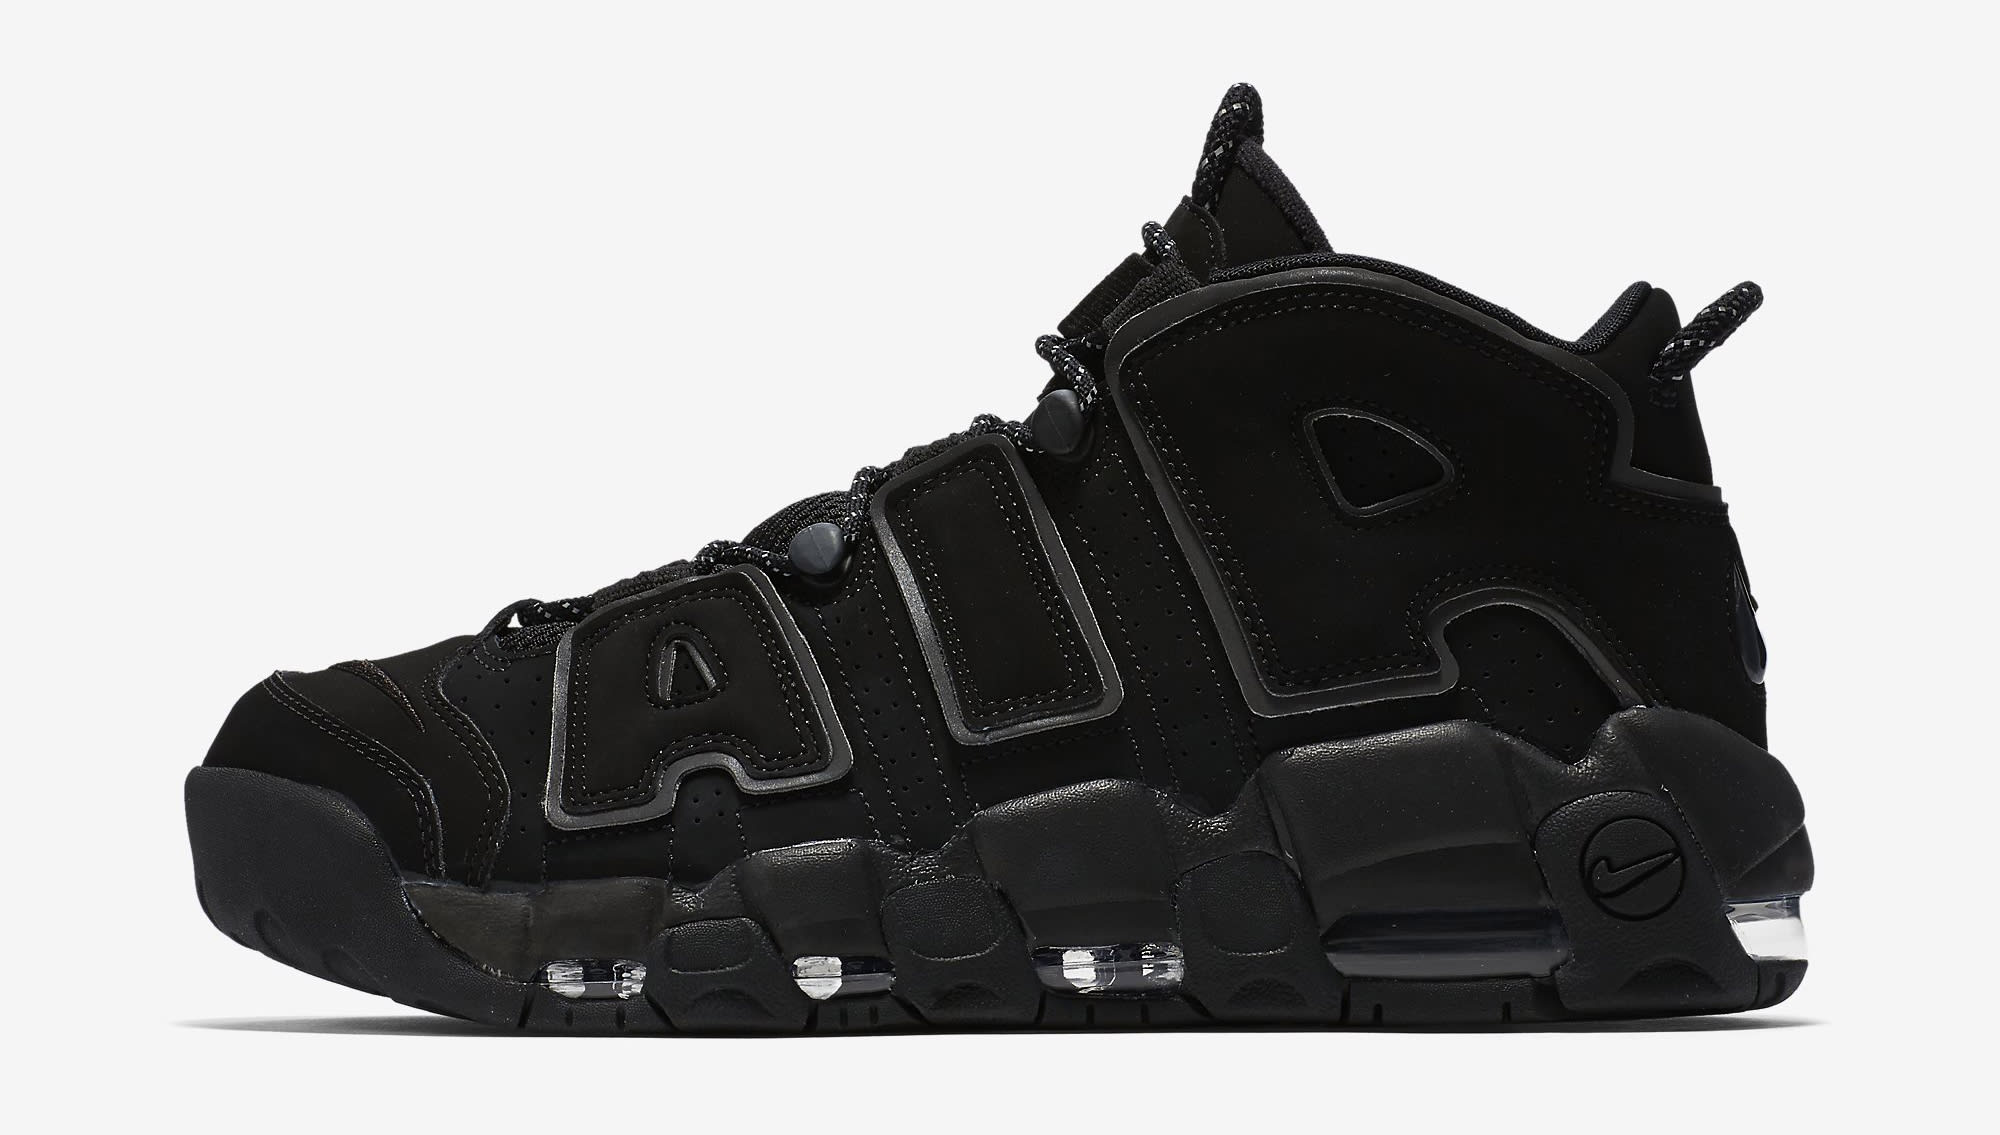 Nike Air More Uptempo Black Reflective 414962-004 Profile